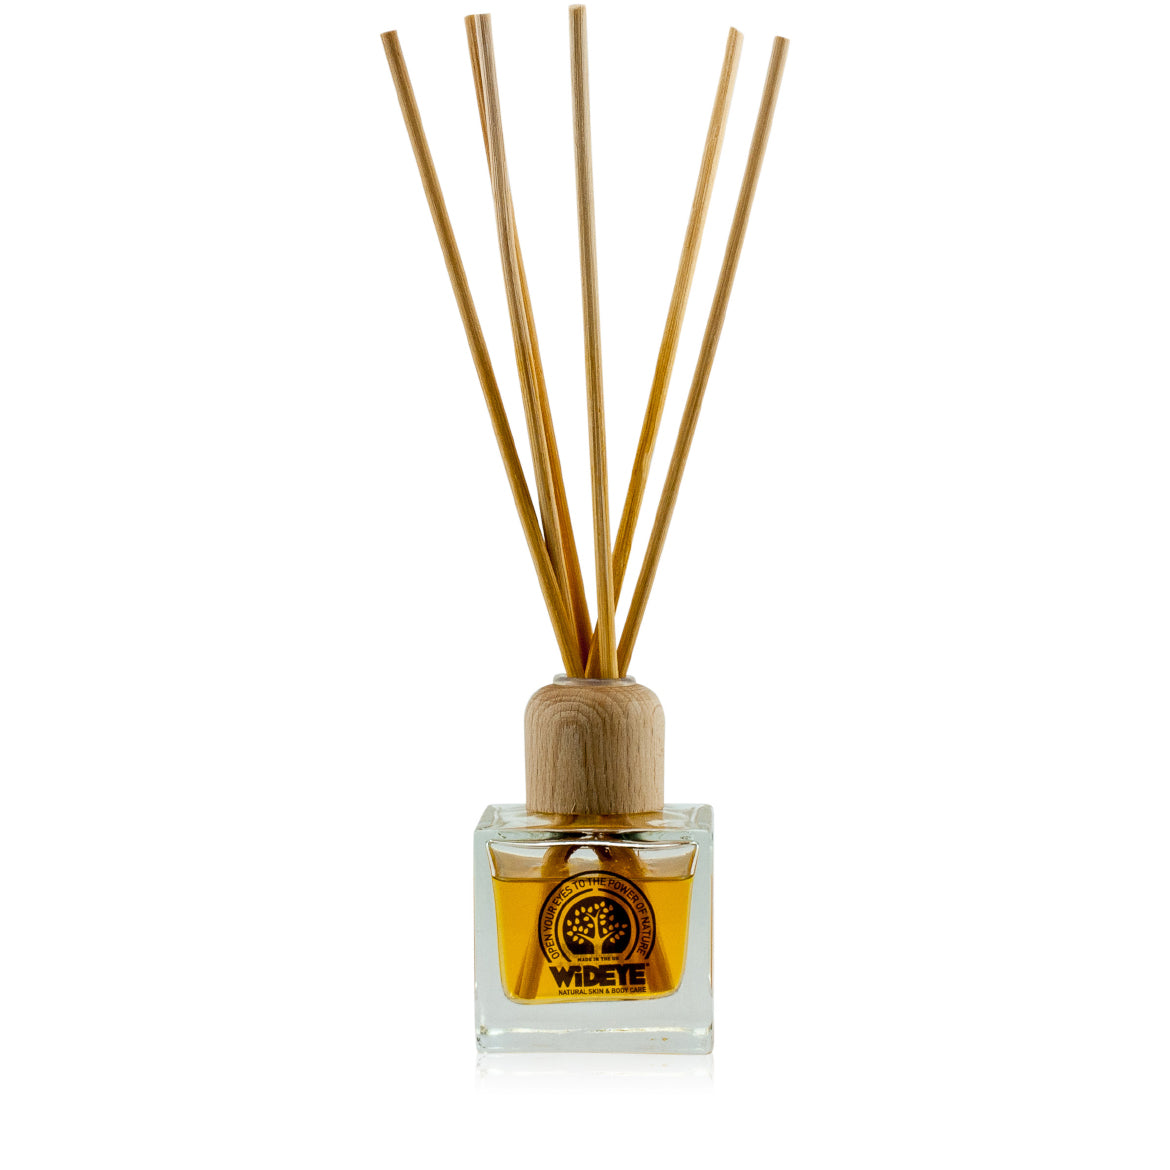 Natural aromatherapy essential oil 'Beach Bum' reed diffuser in glass bottle made by WiDEYE in Rye.